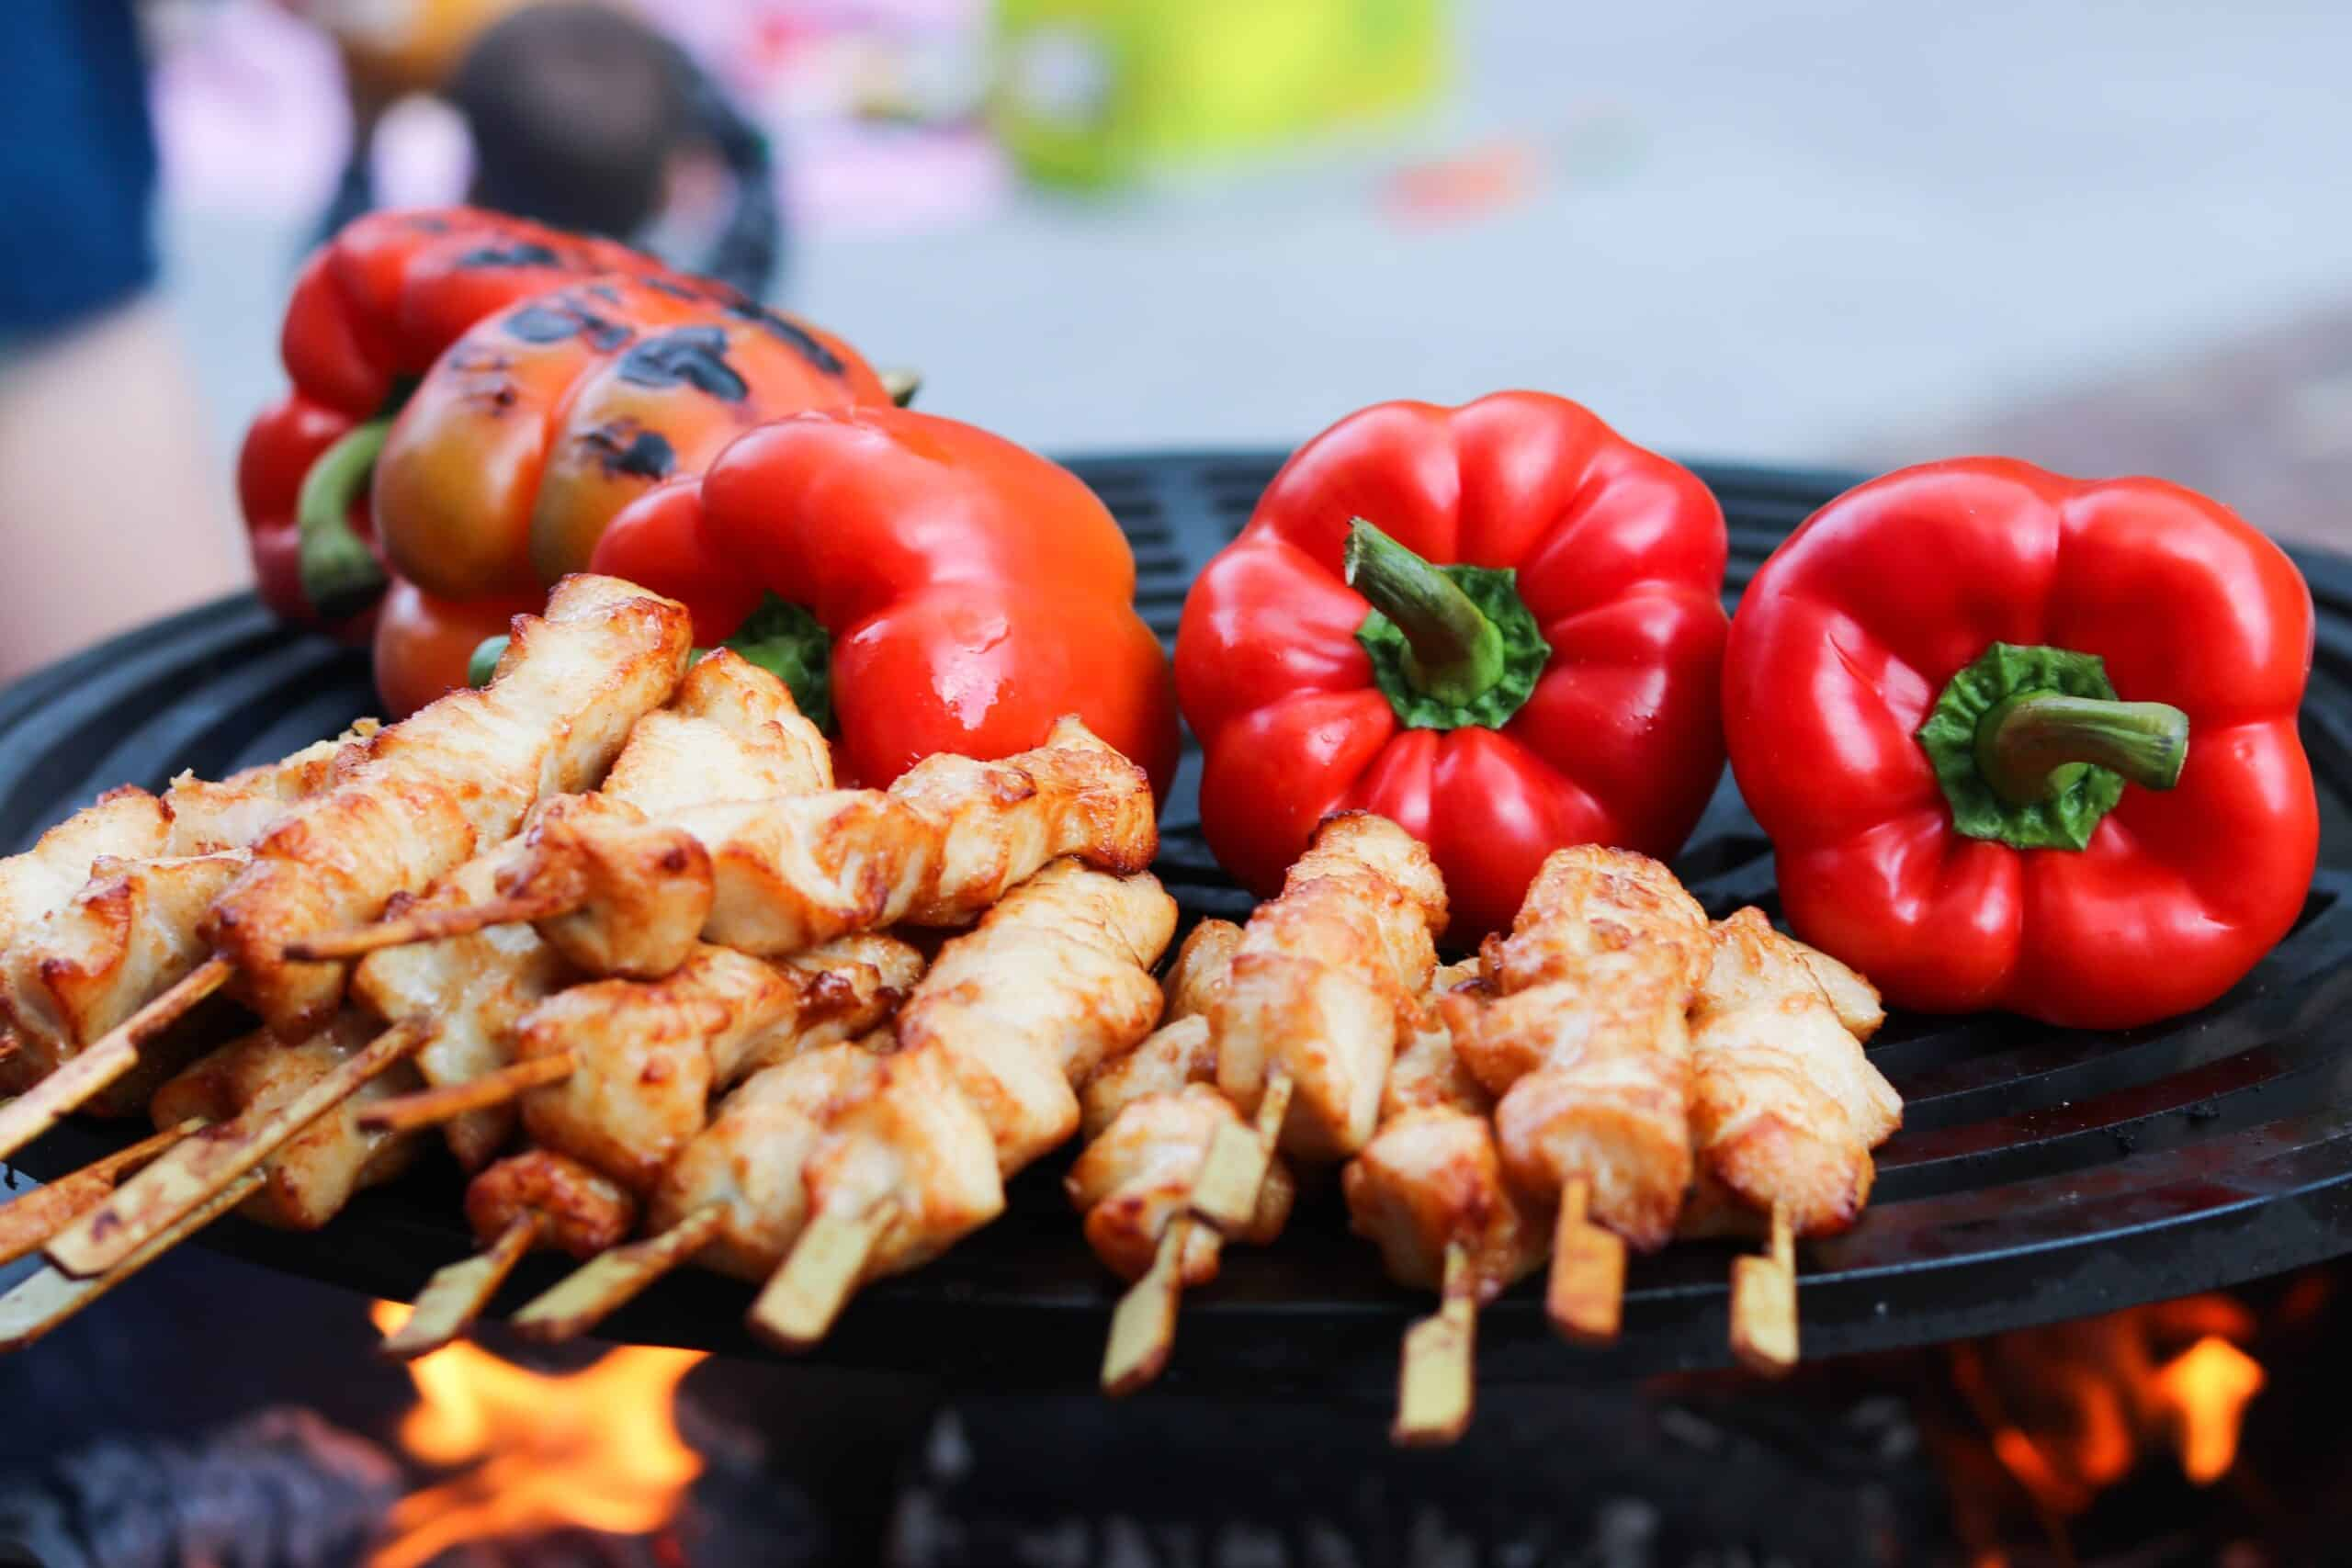 How To Have A Healthy Barbecue